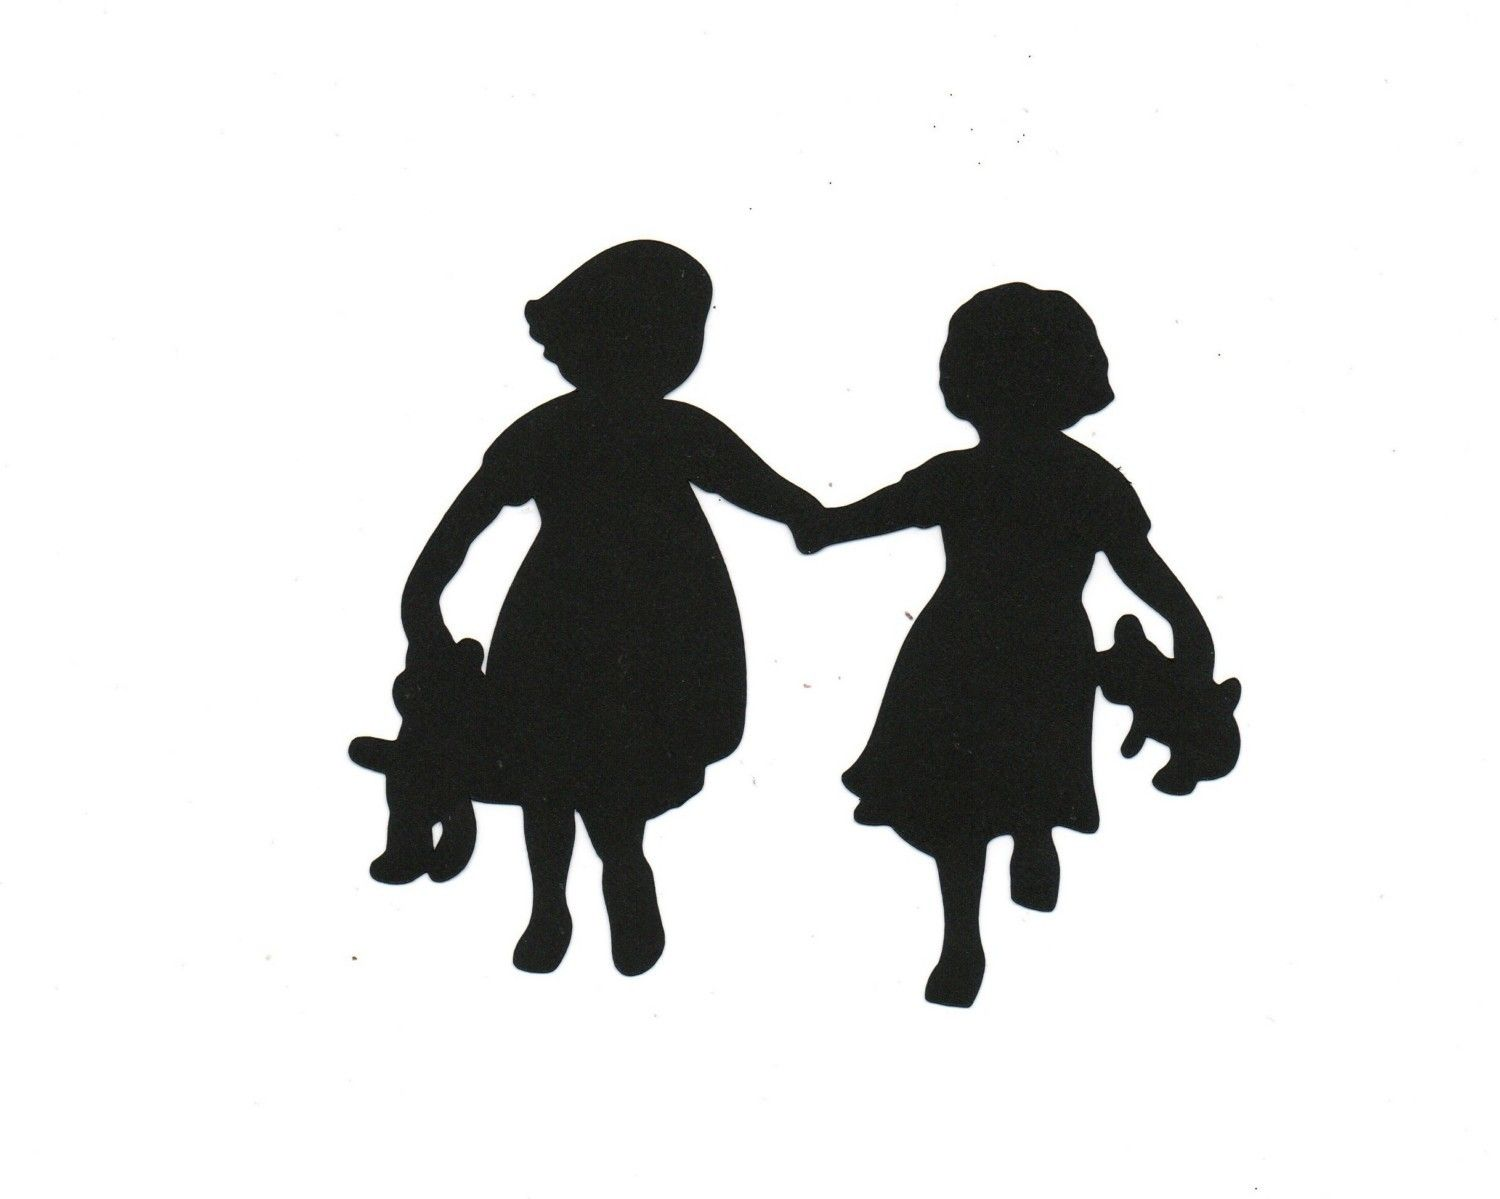 Sister and younger sister clipart black people graphic transparent library Sisters Child Silhouette | silouettes | Silhouette ... graphic transparent library